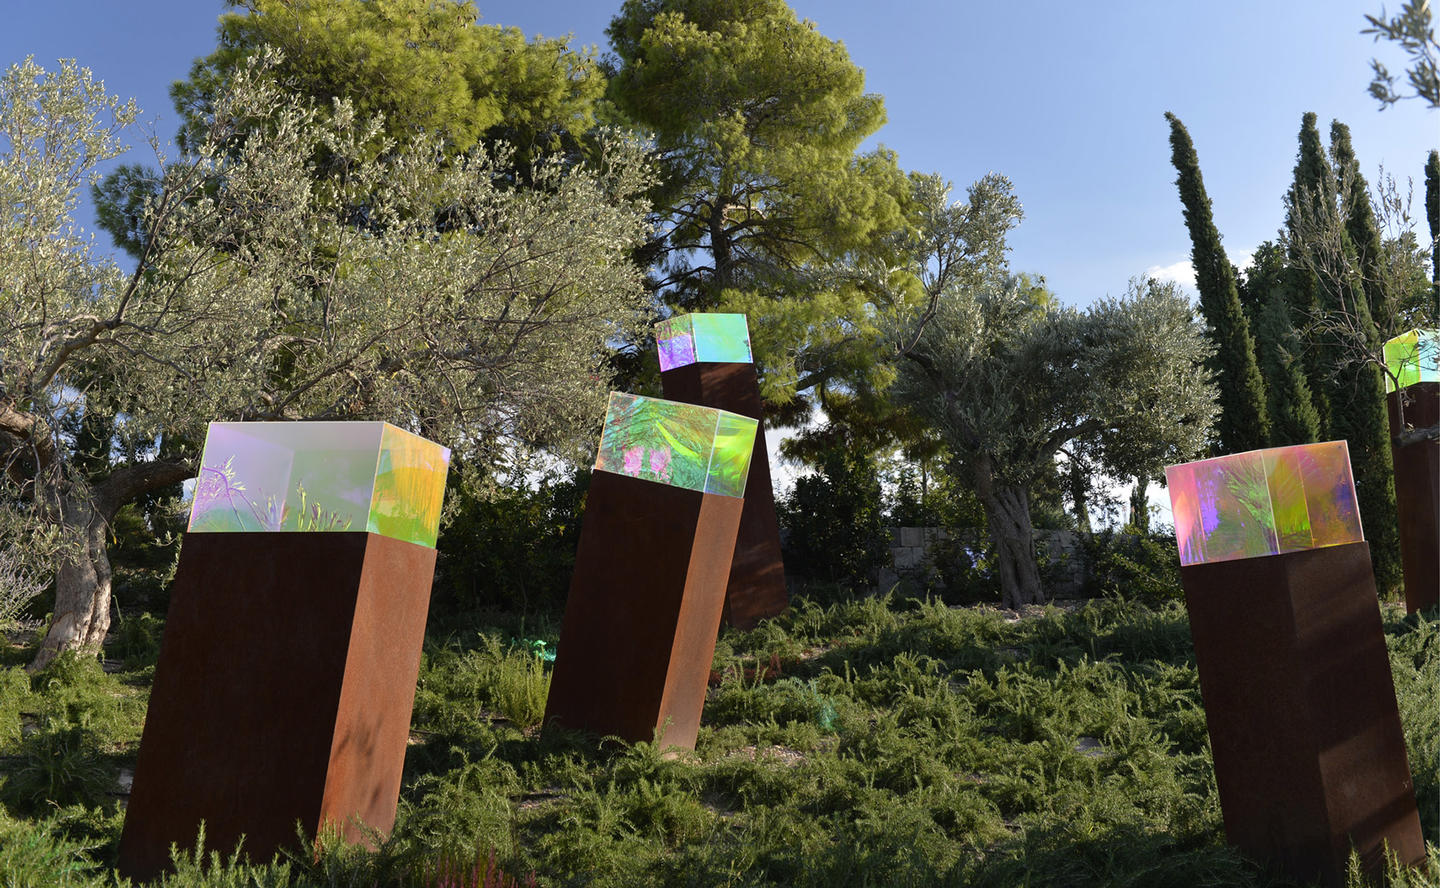 Sculpture in Gardens, Villa 20 - Amanzoe, Greece